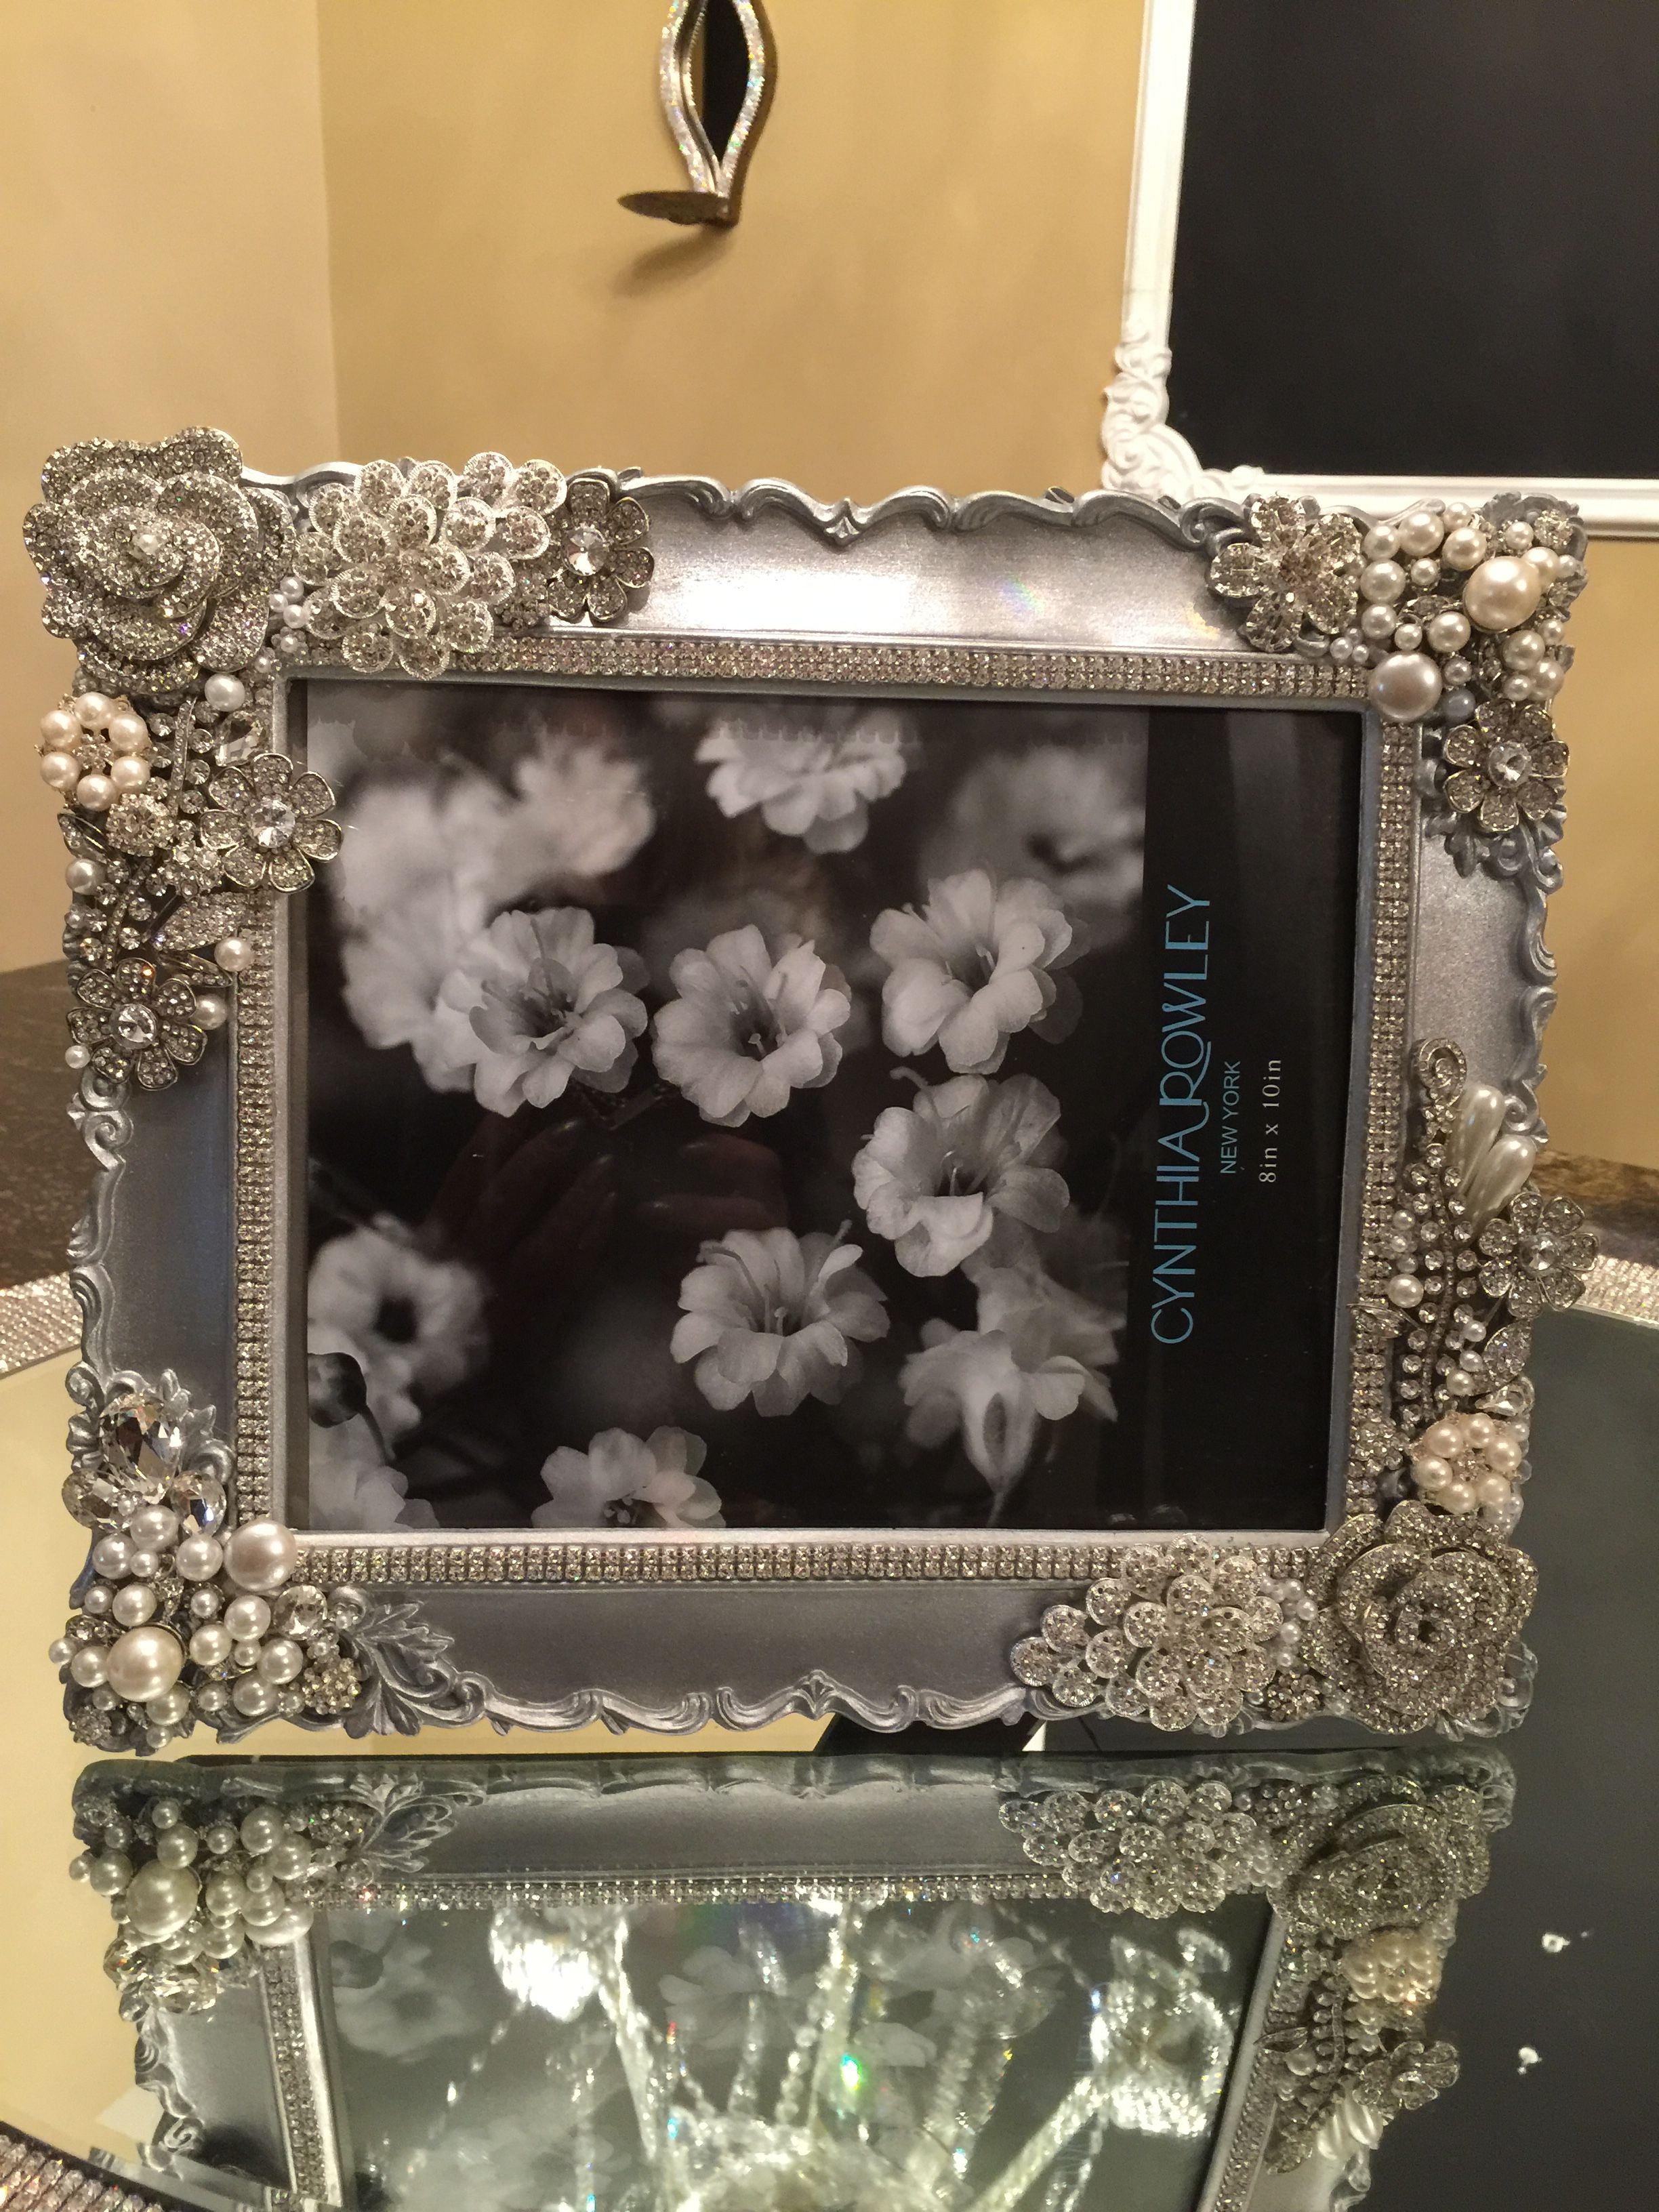 Pin by patti esposito on Bling for your home.made to order on etsy ...